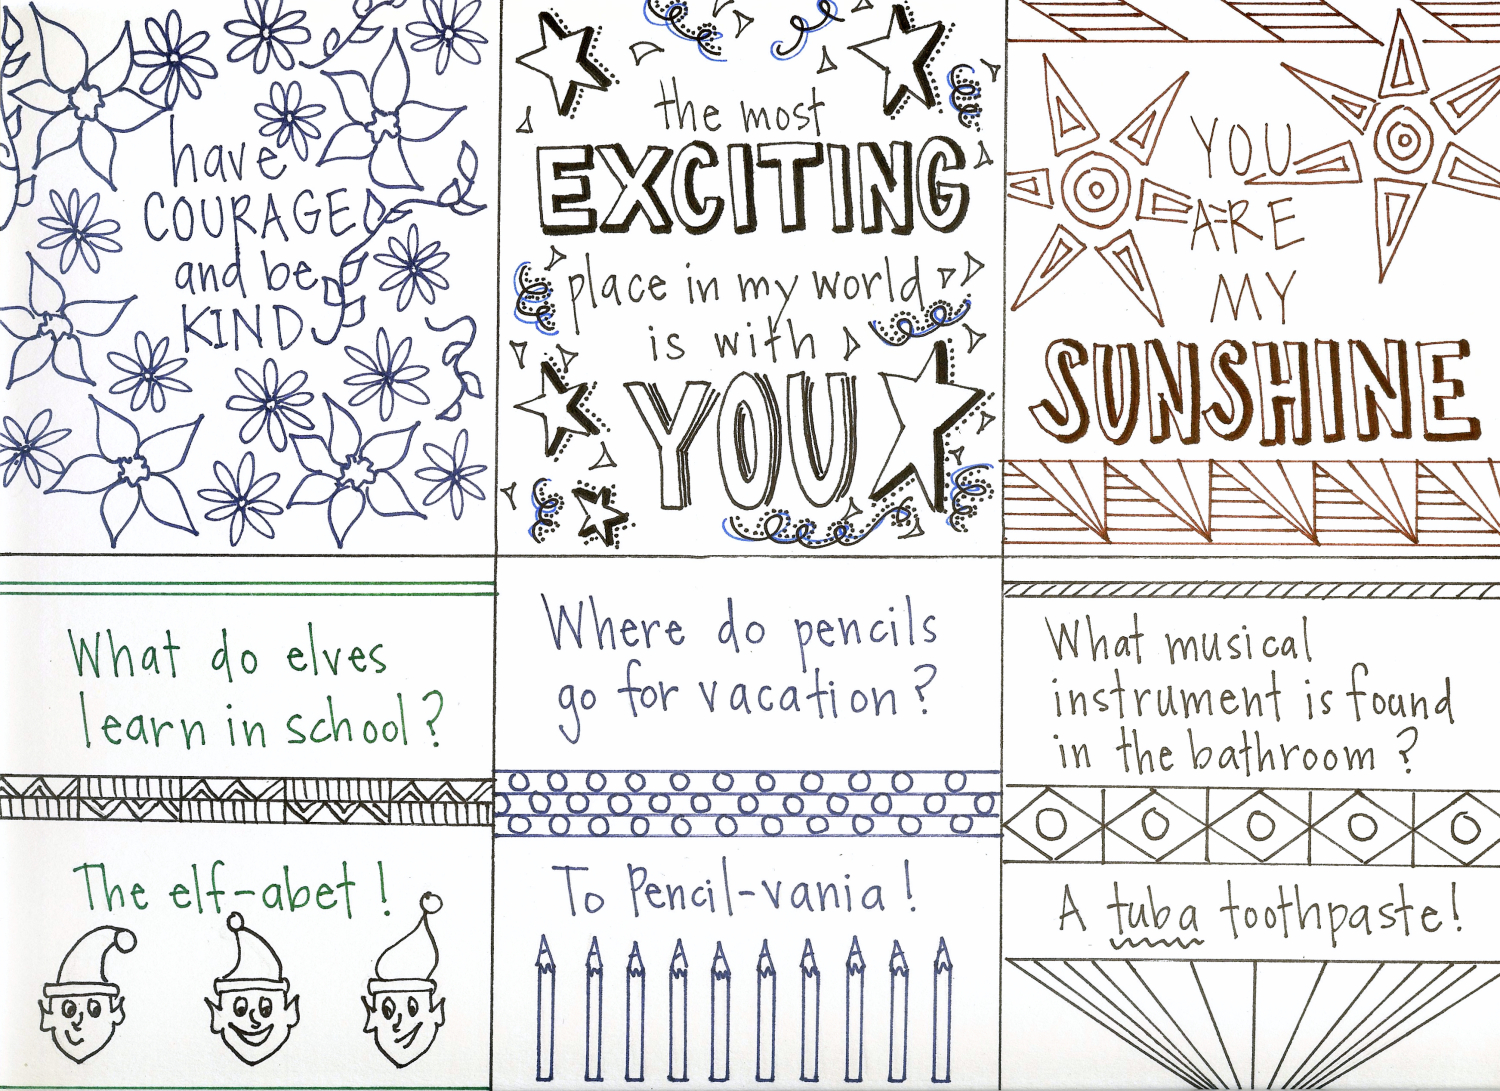 image about Printable Lunchbox Notes called Printable Lunch Notes - The Chronicles of Household